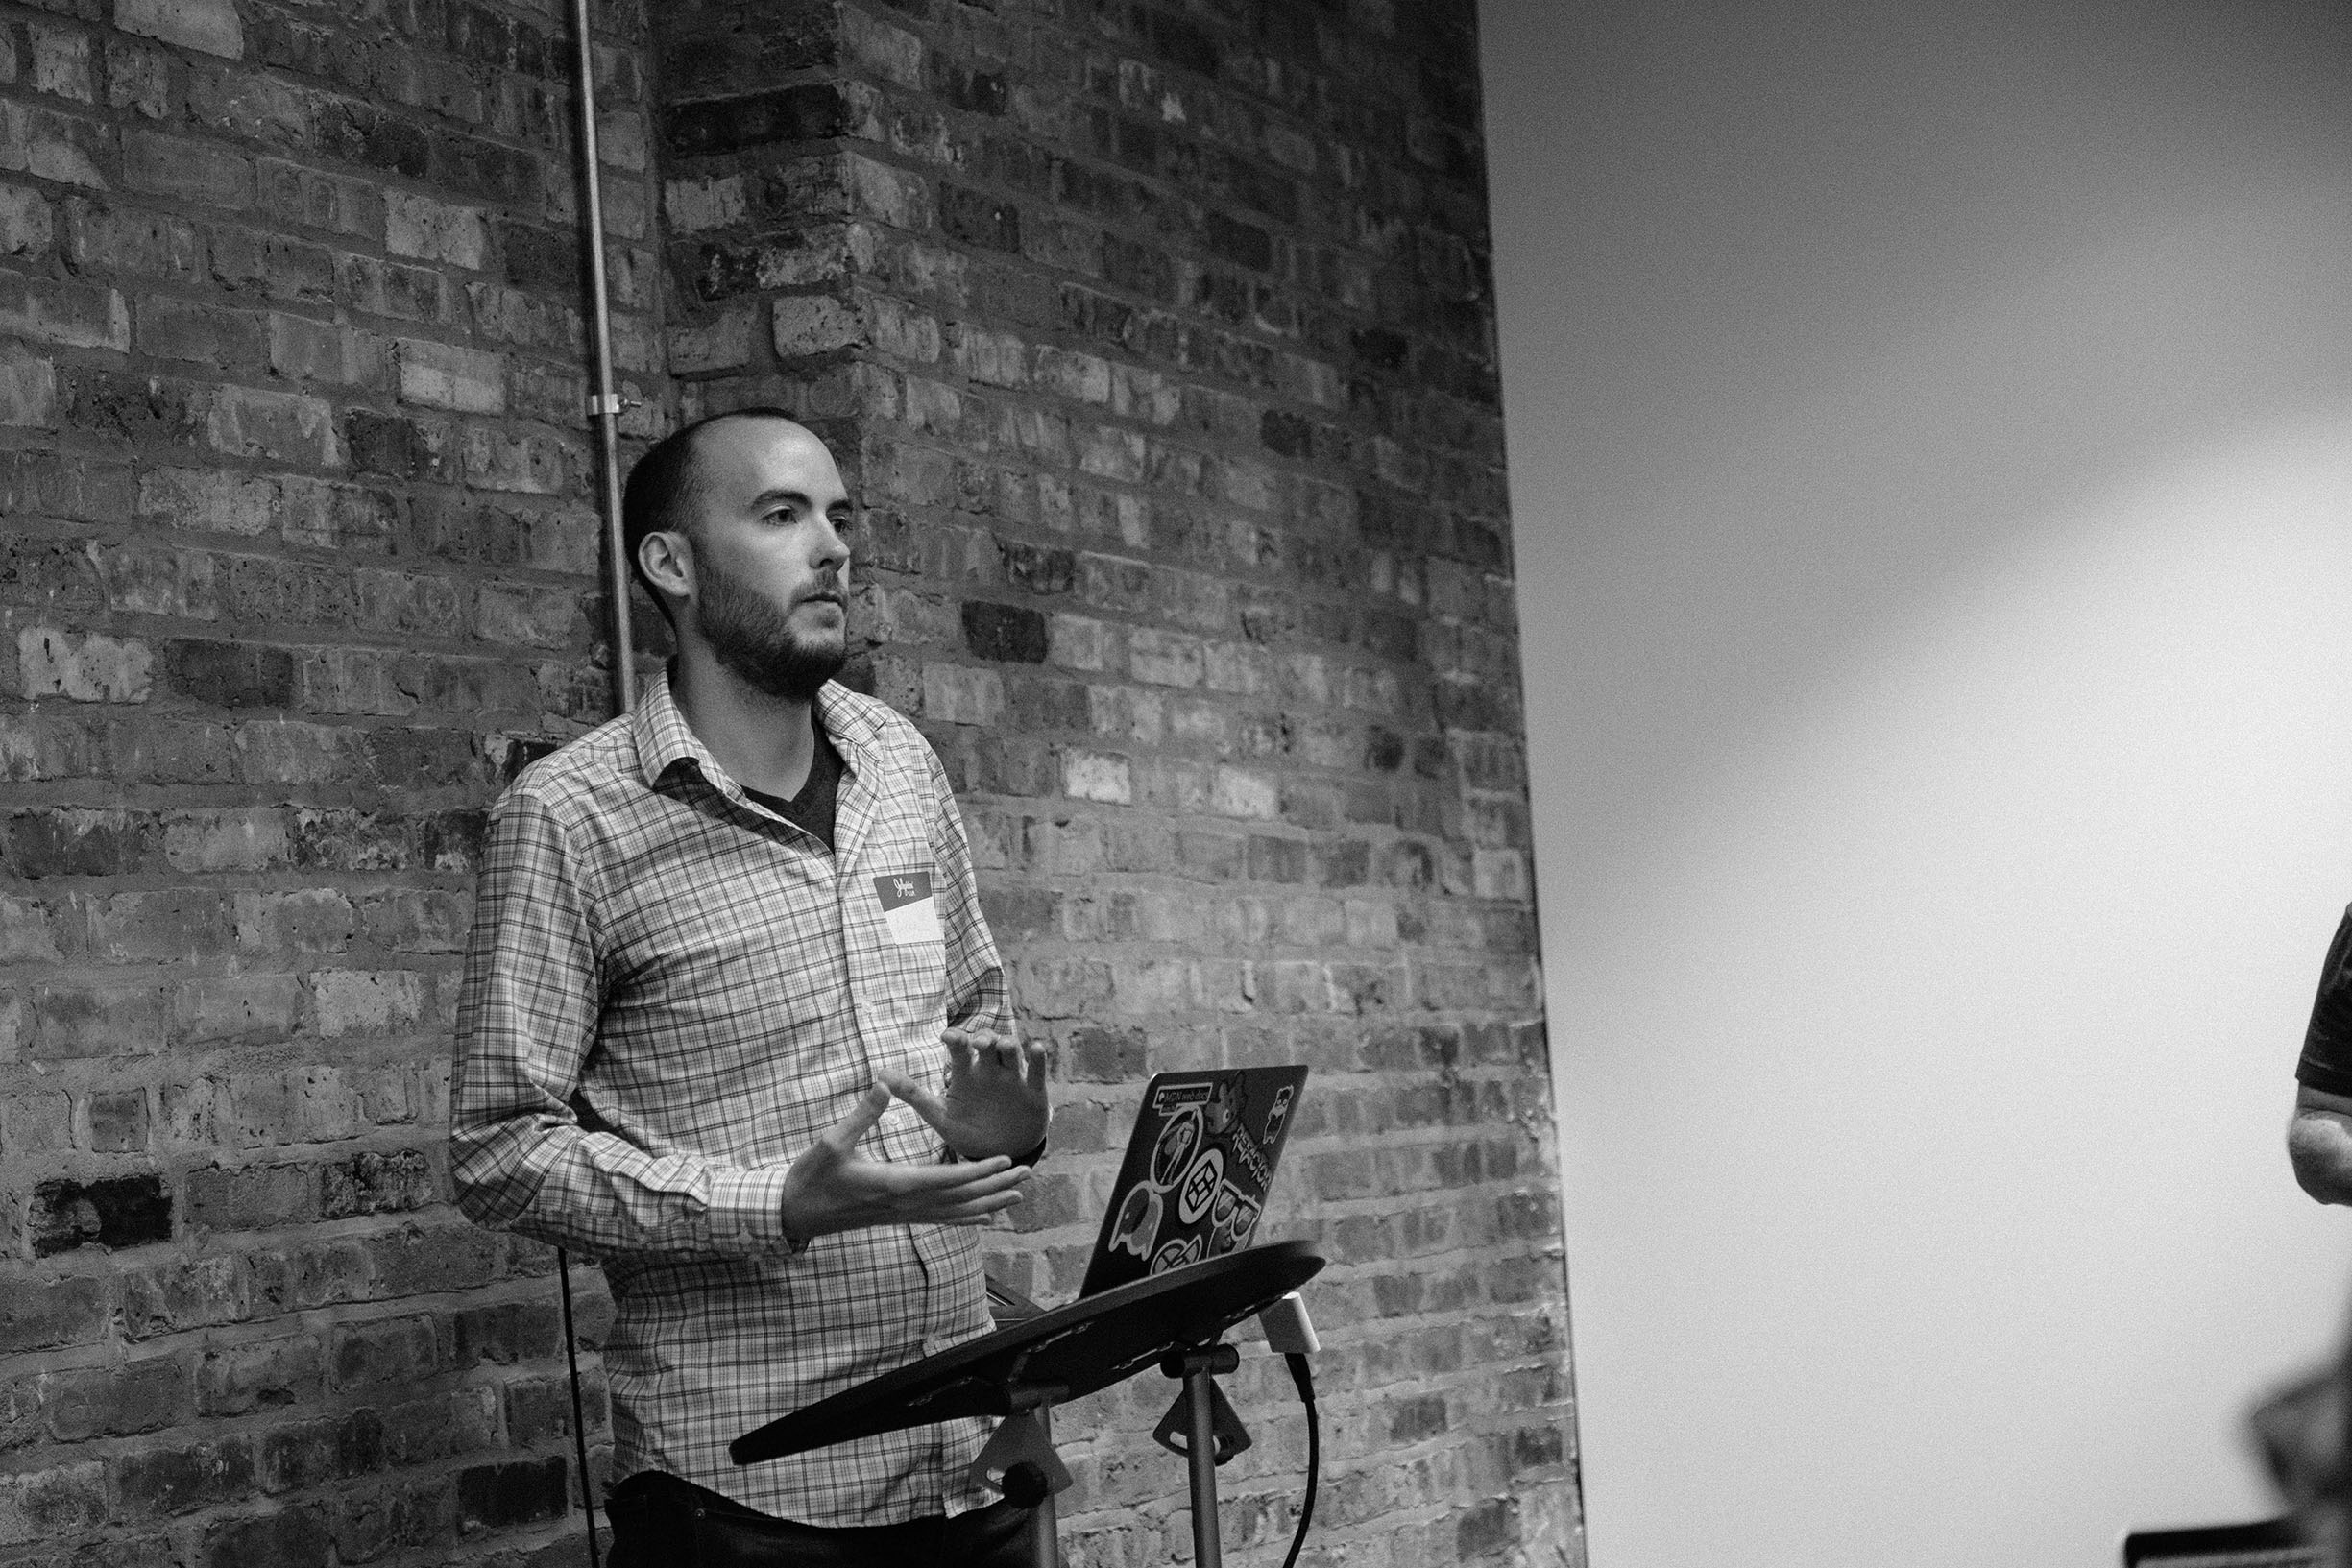 Austin presenting in front of brick wall